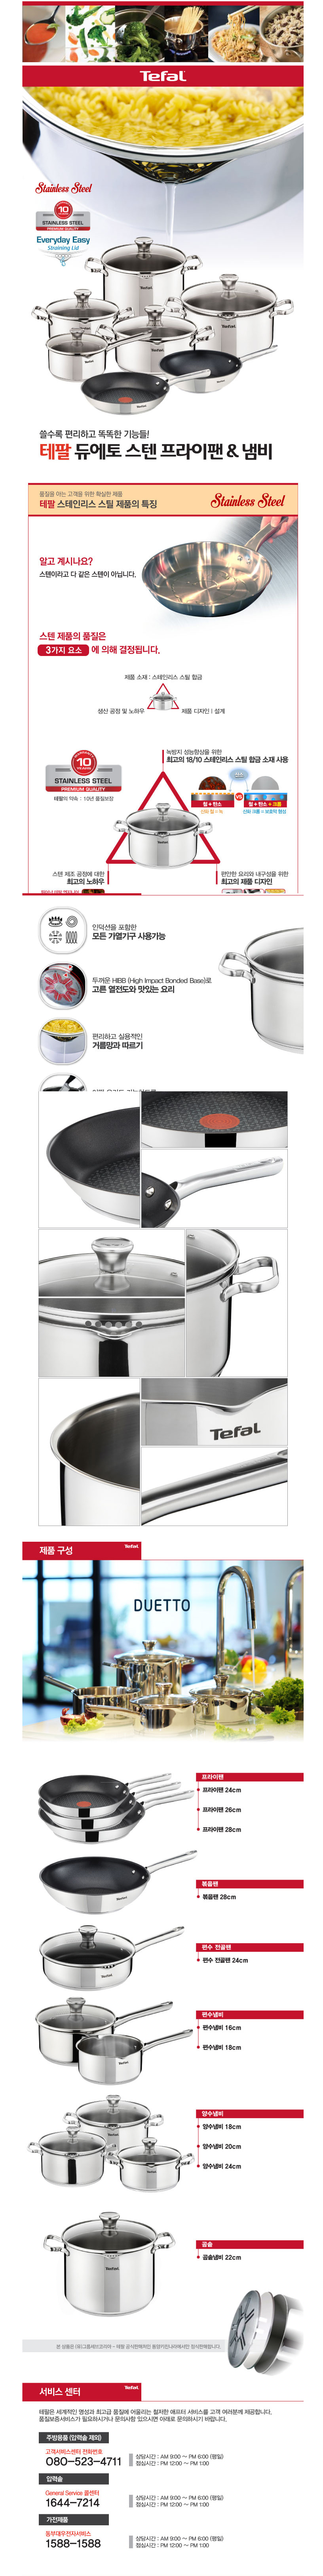 Tefal_duetto_stainless_onehand18cm_detail.jpg